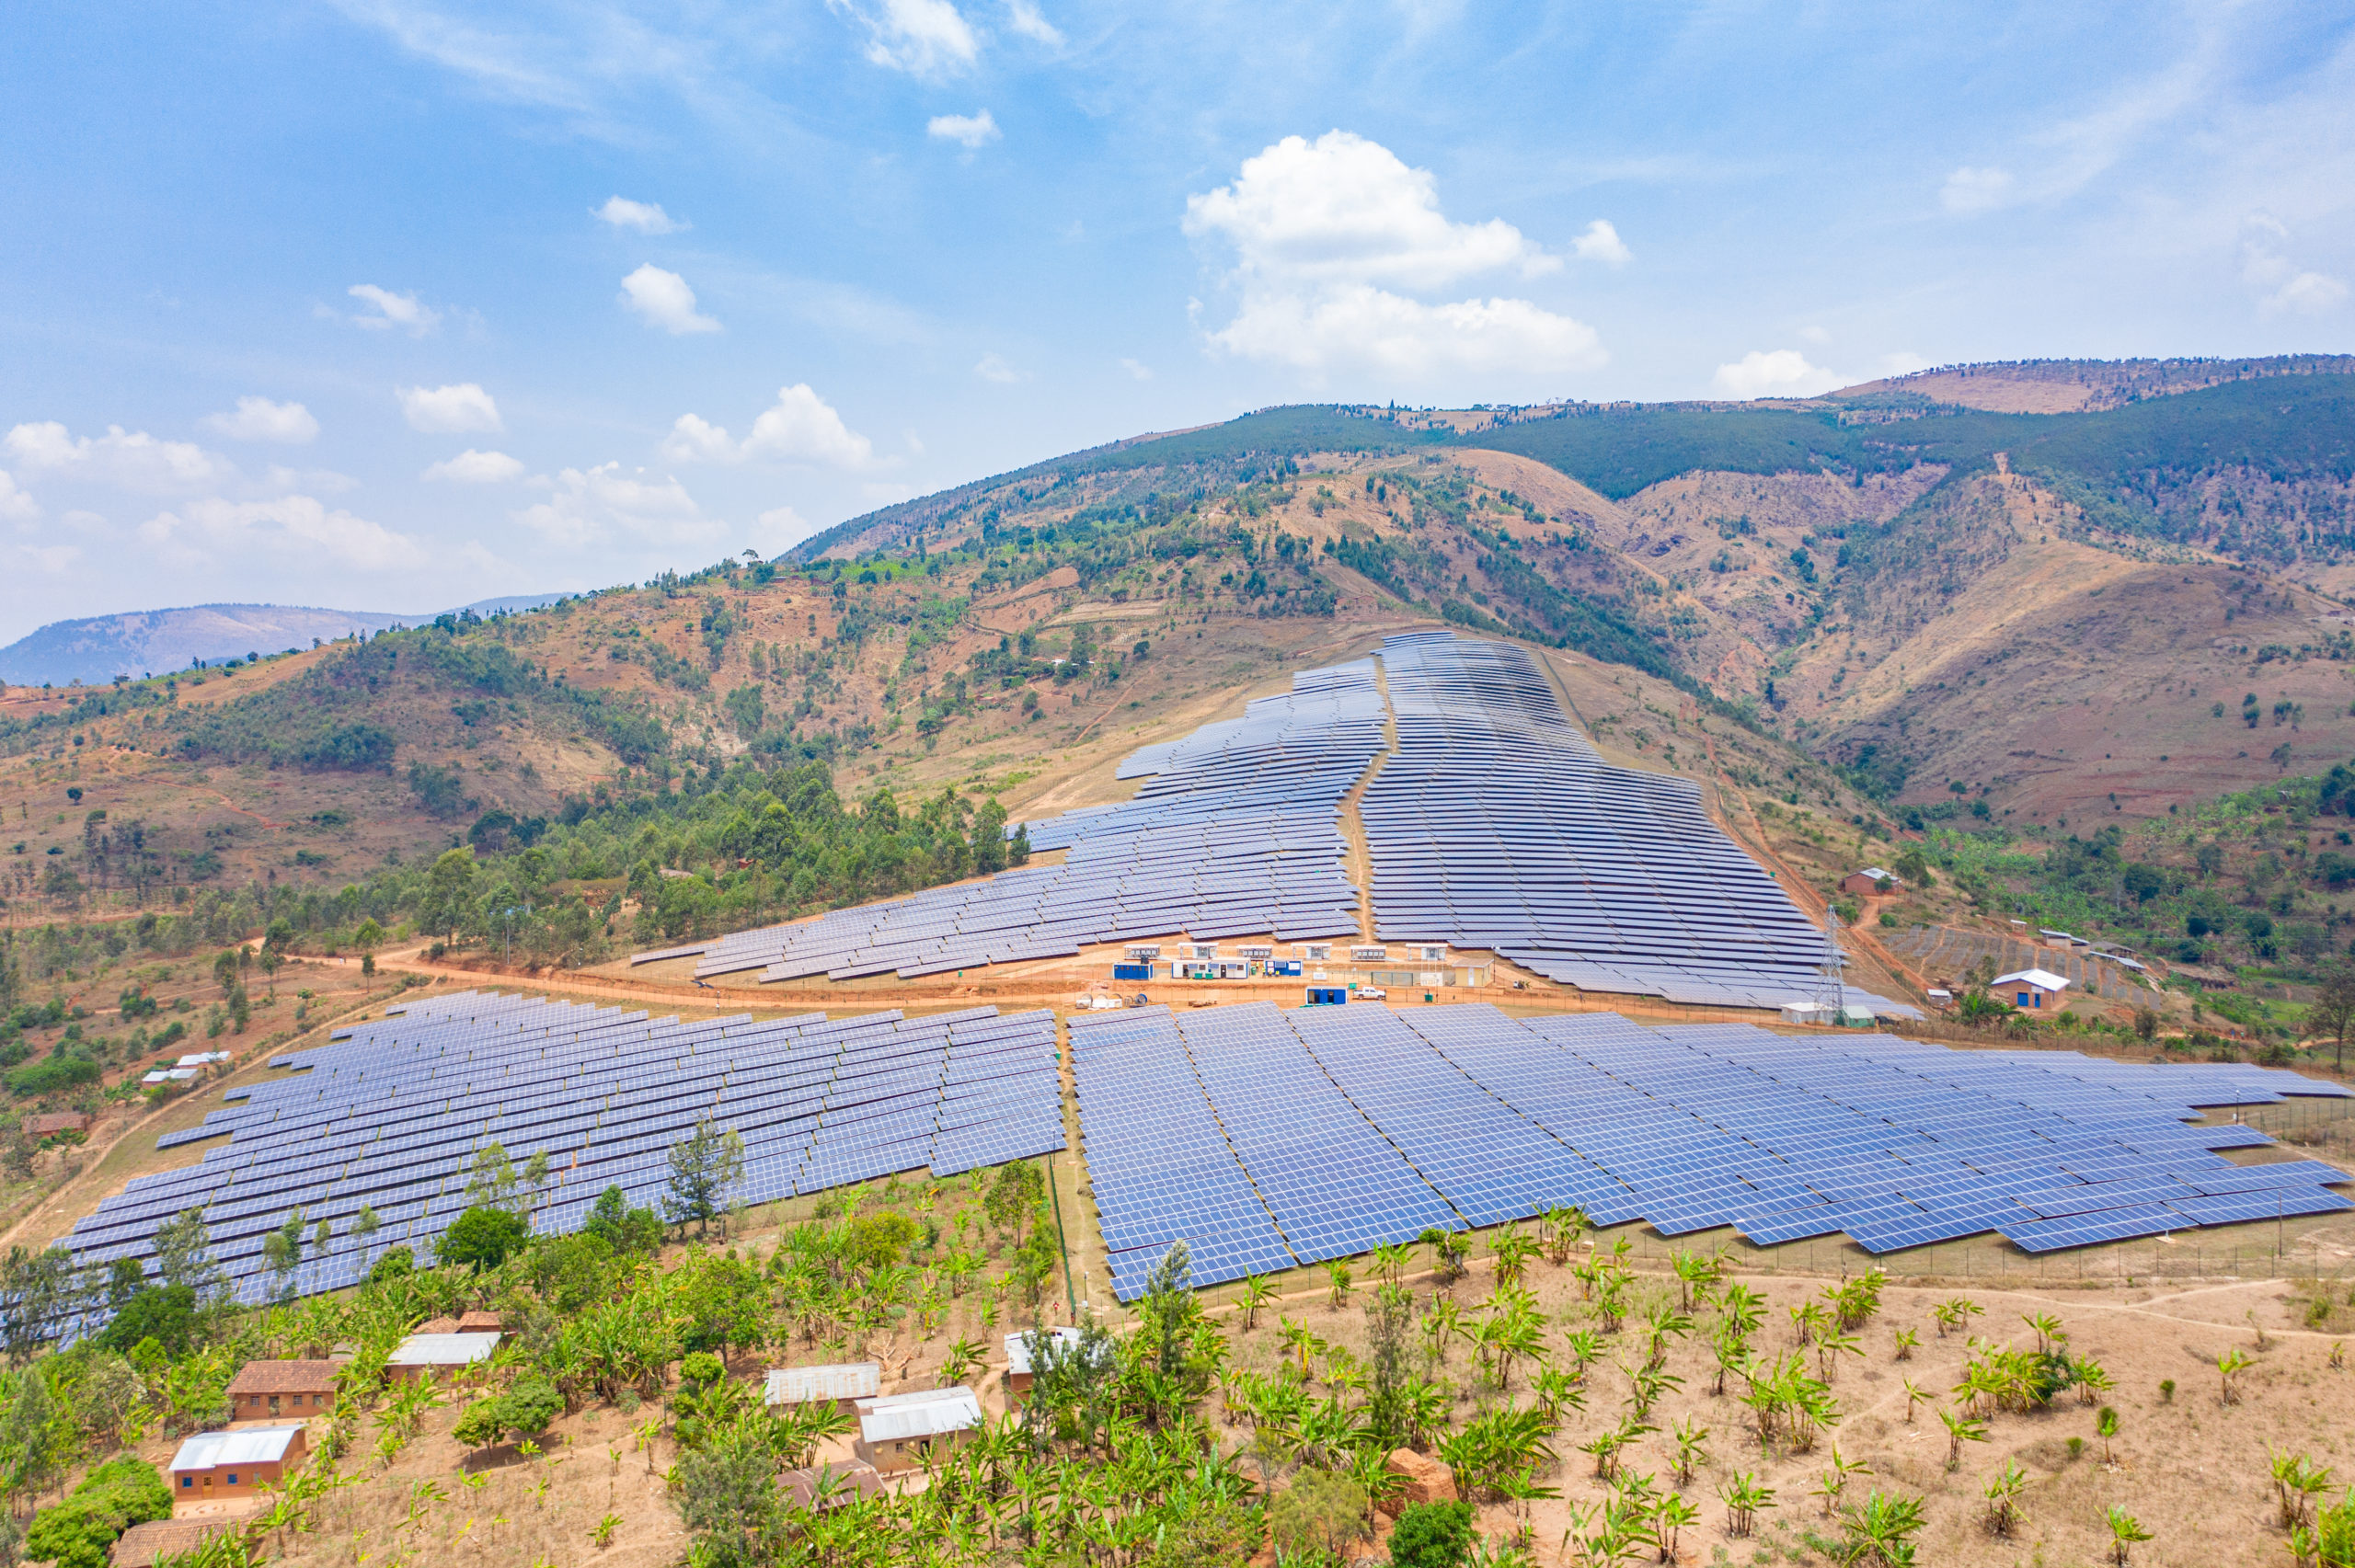 Burundi's first solar farm increases country's generating capacity by 10%